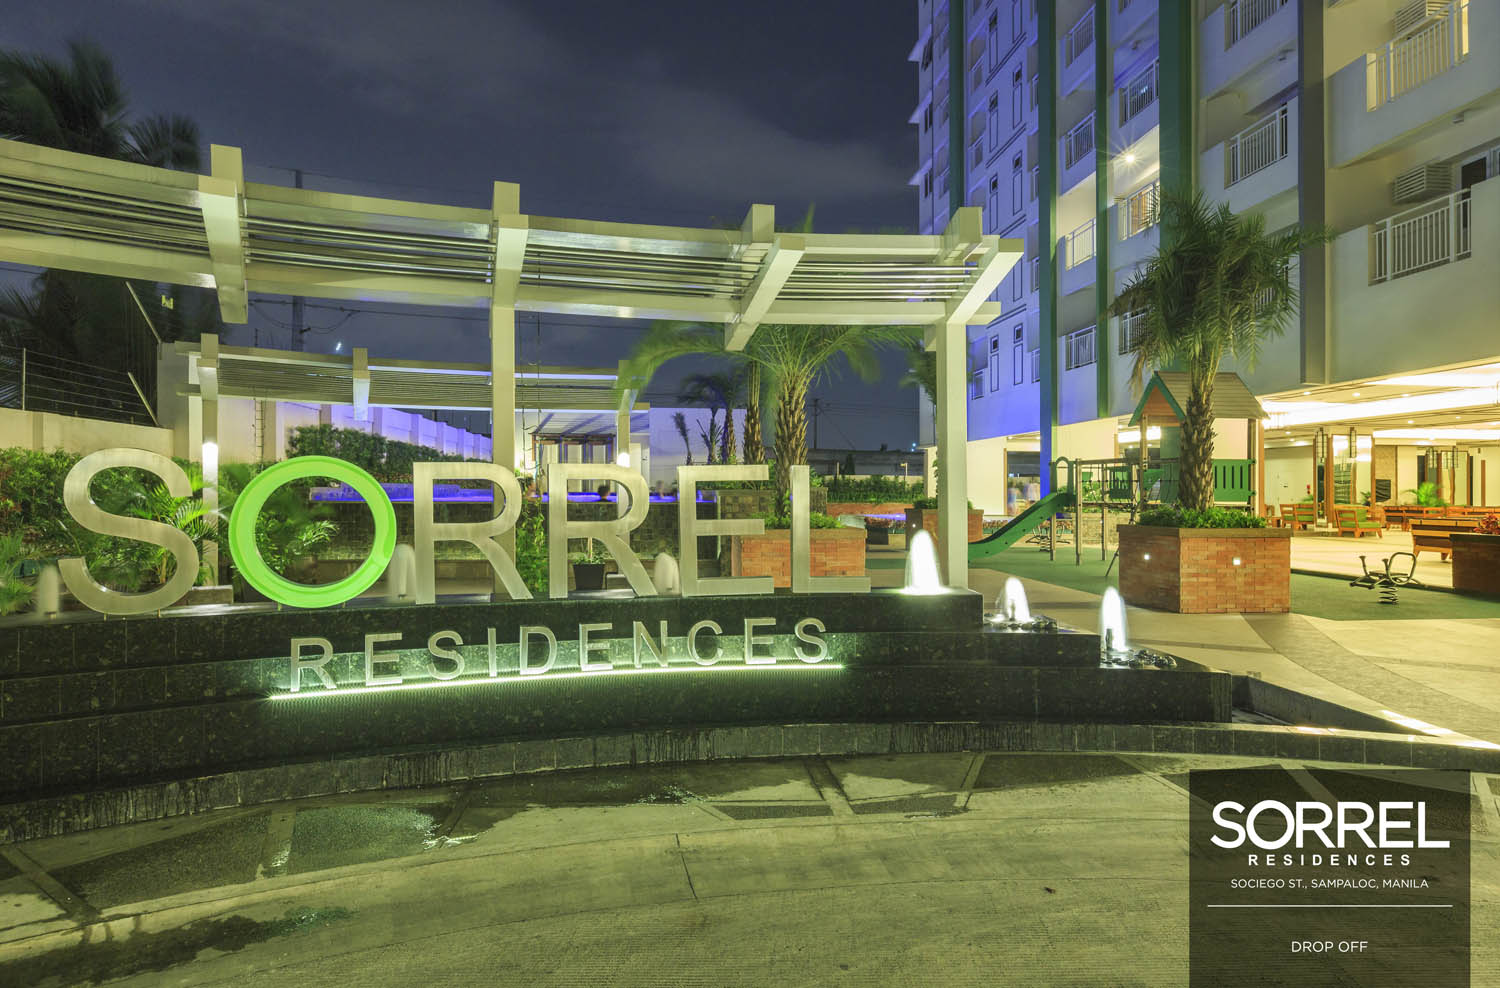 sorrel-residences-drop-off